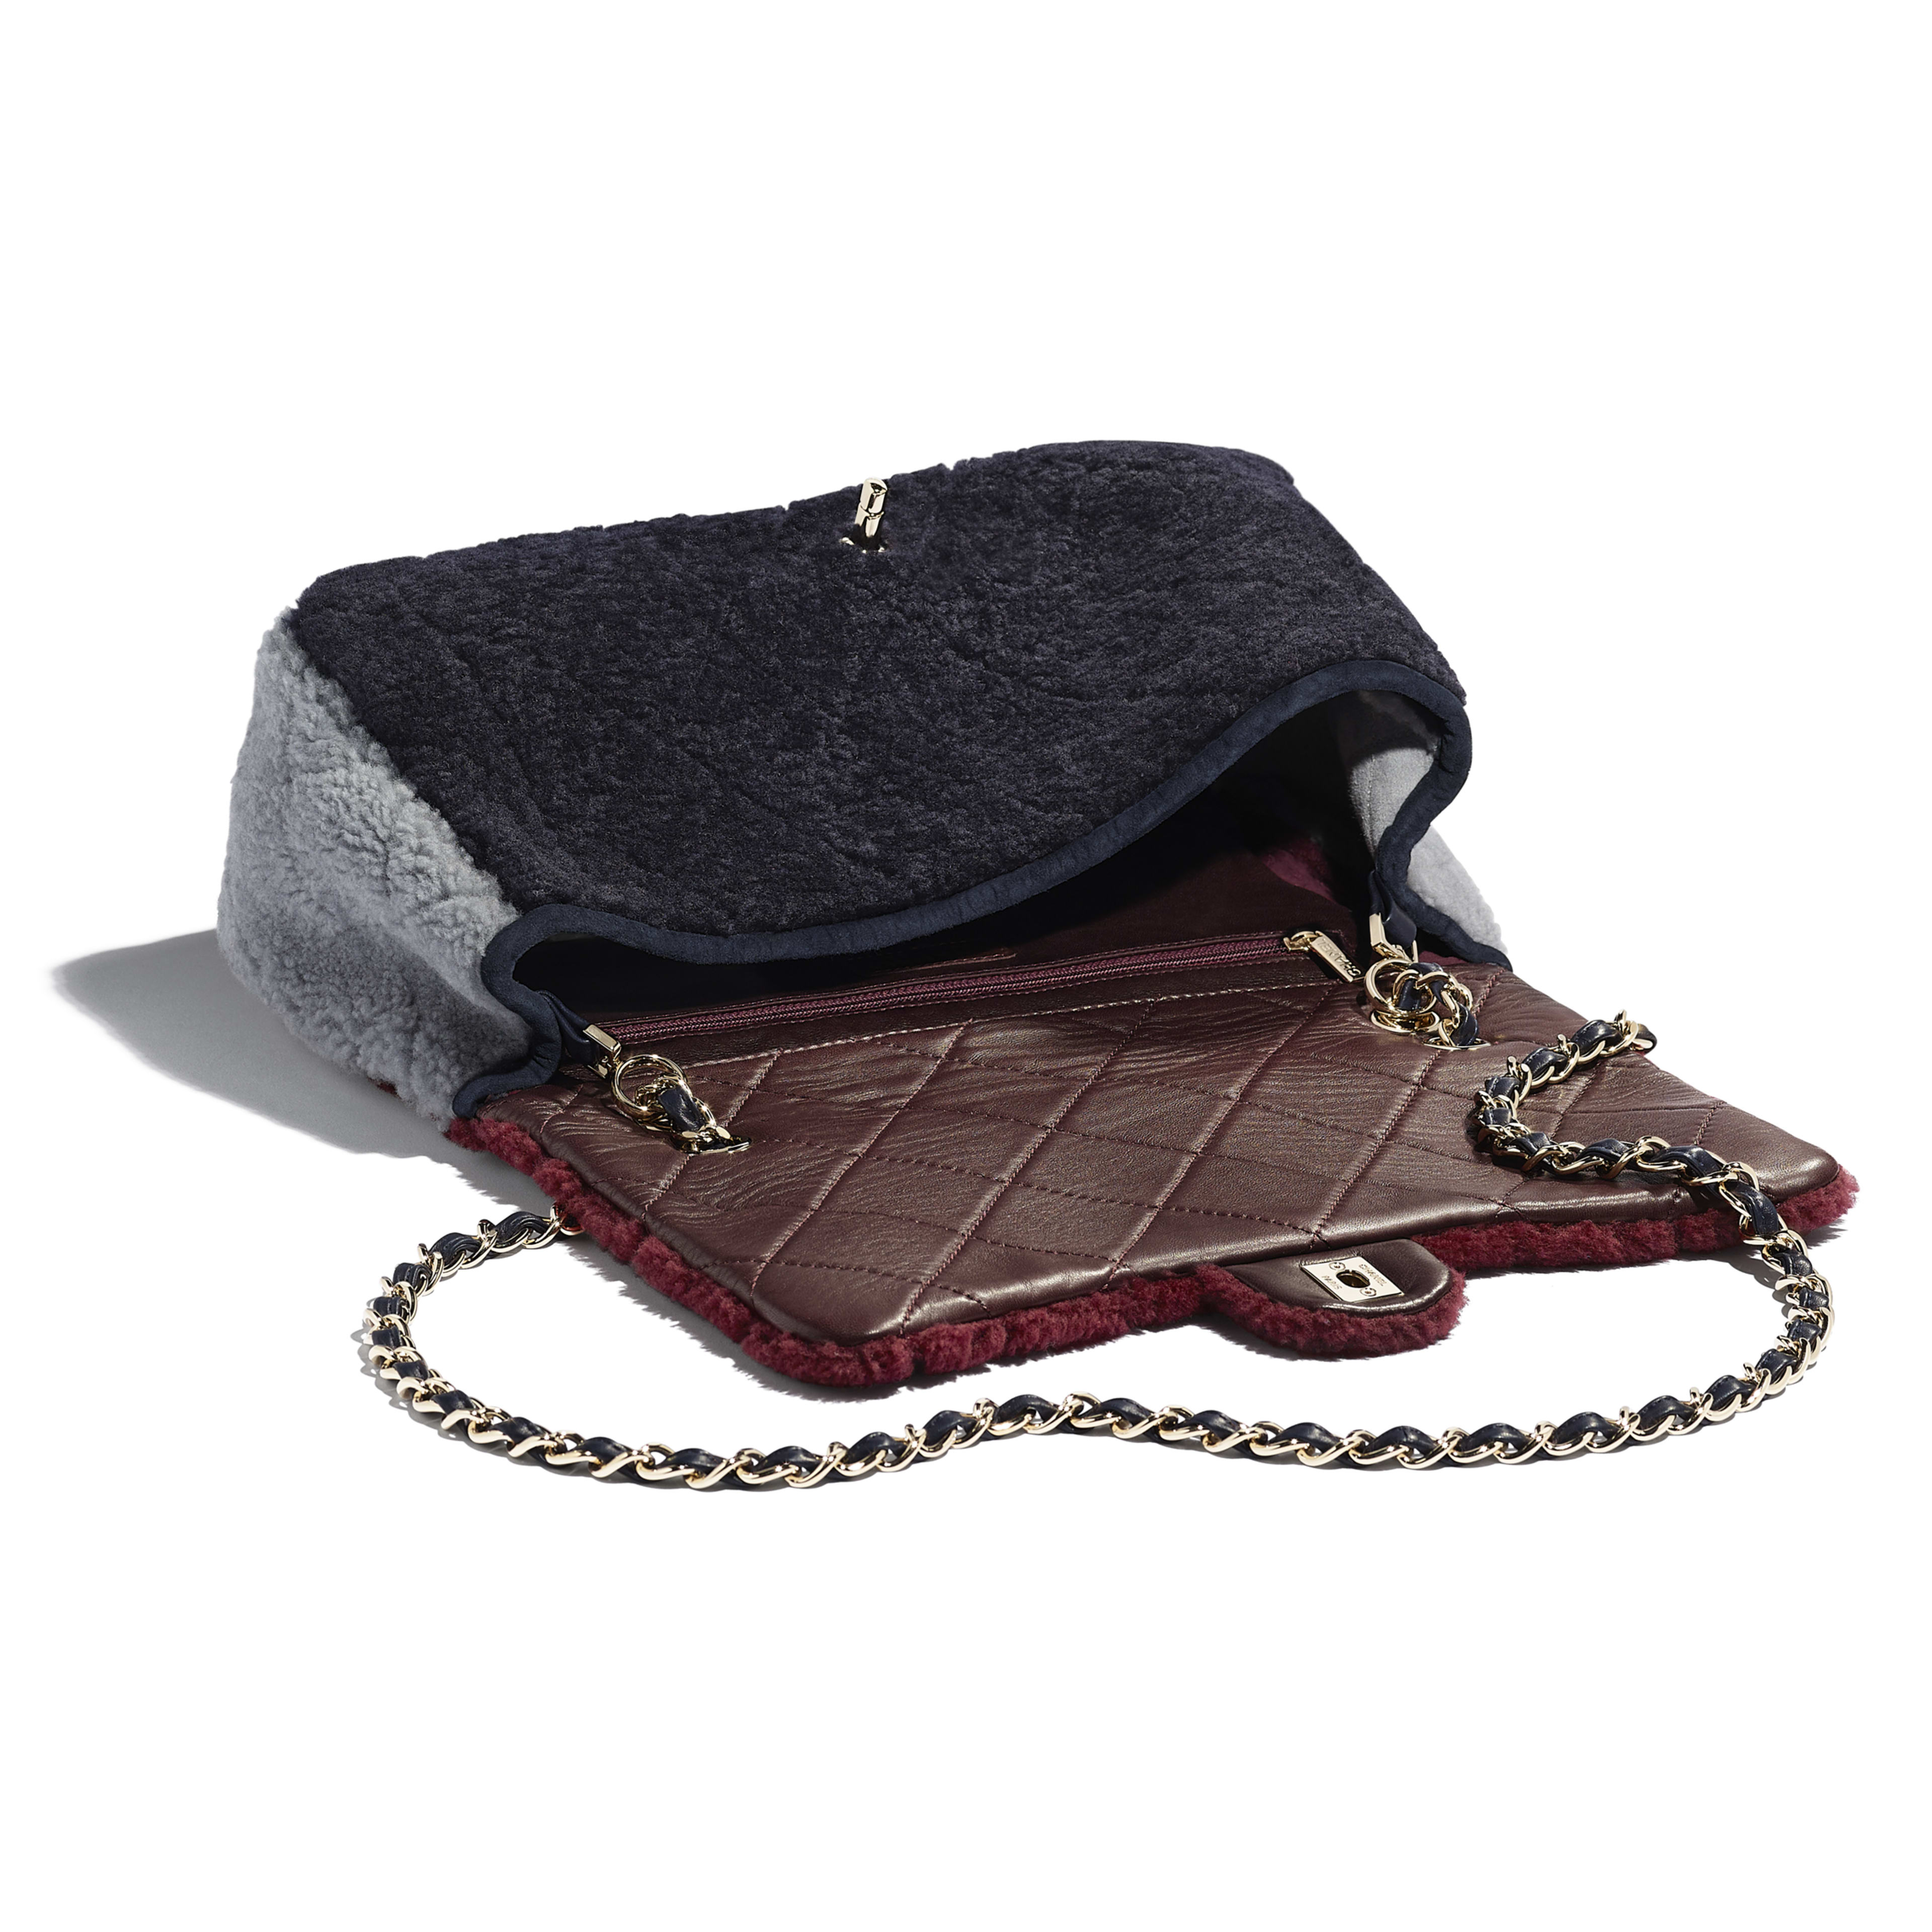 Flap Bag - Burgundy, Navy Blue & Gray - Shearling Sheepskin & Gold-Tone Metal - Other view - see full sized version